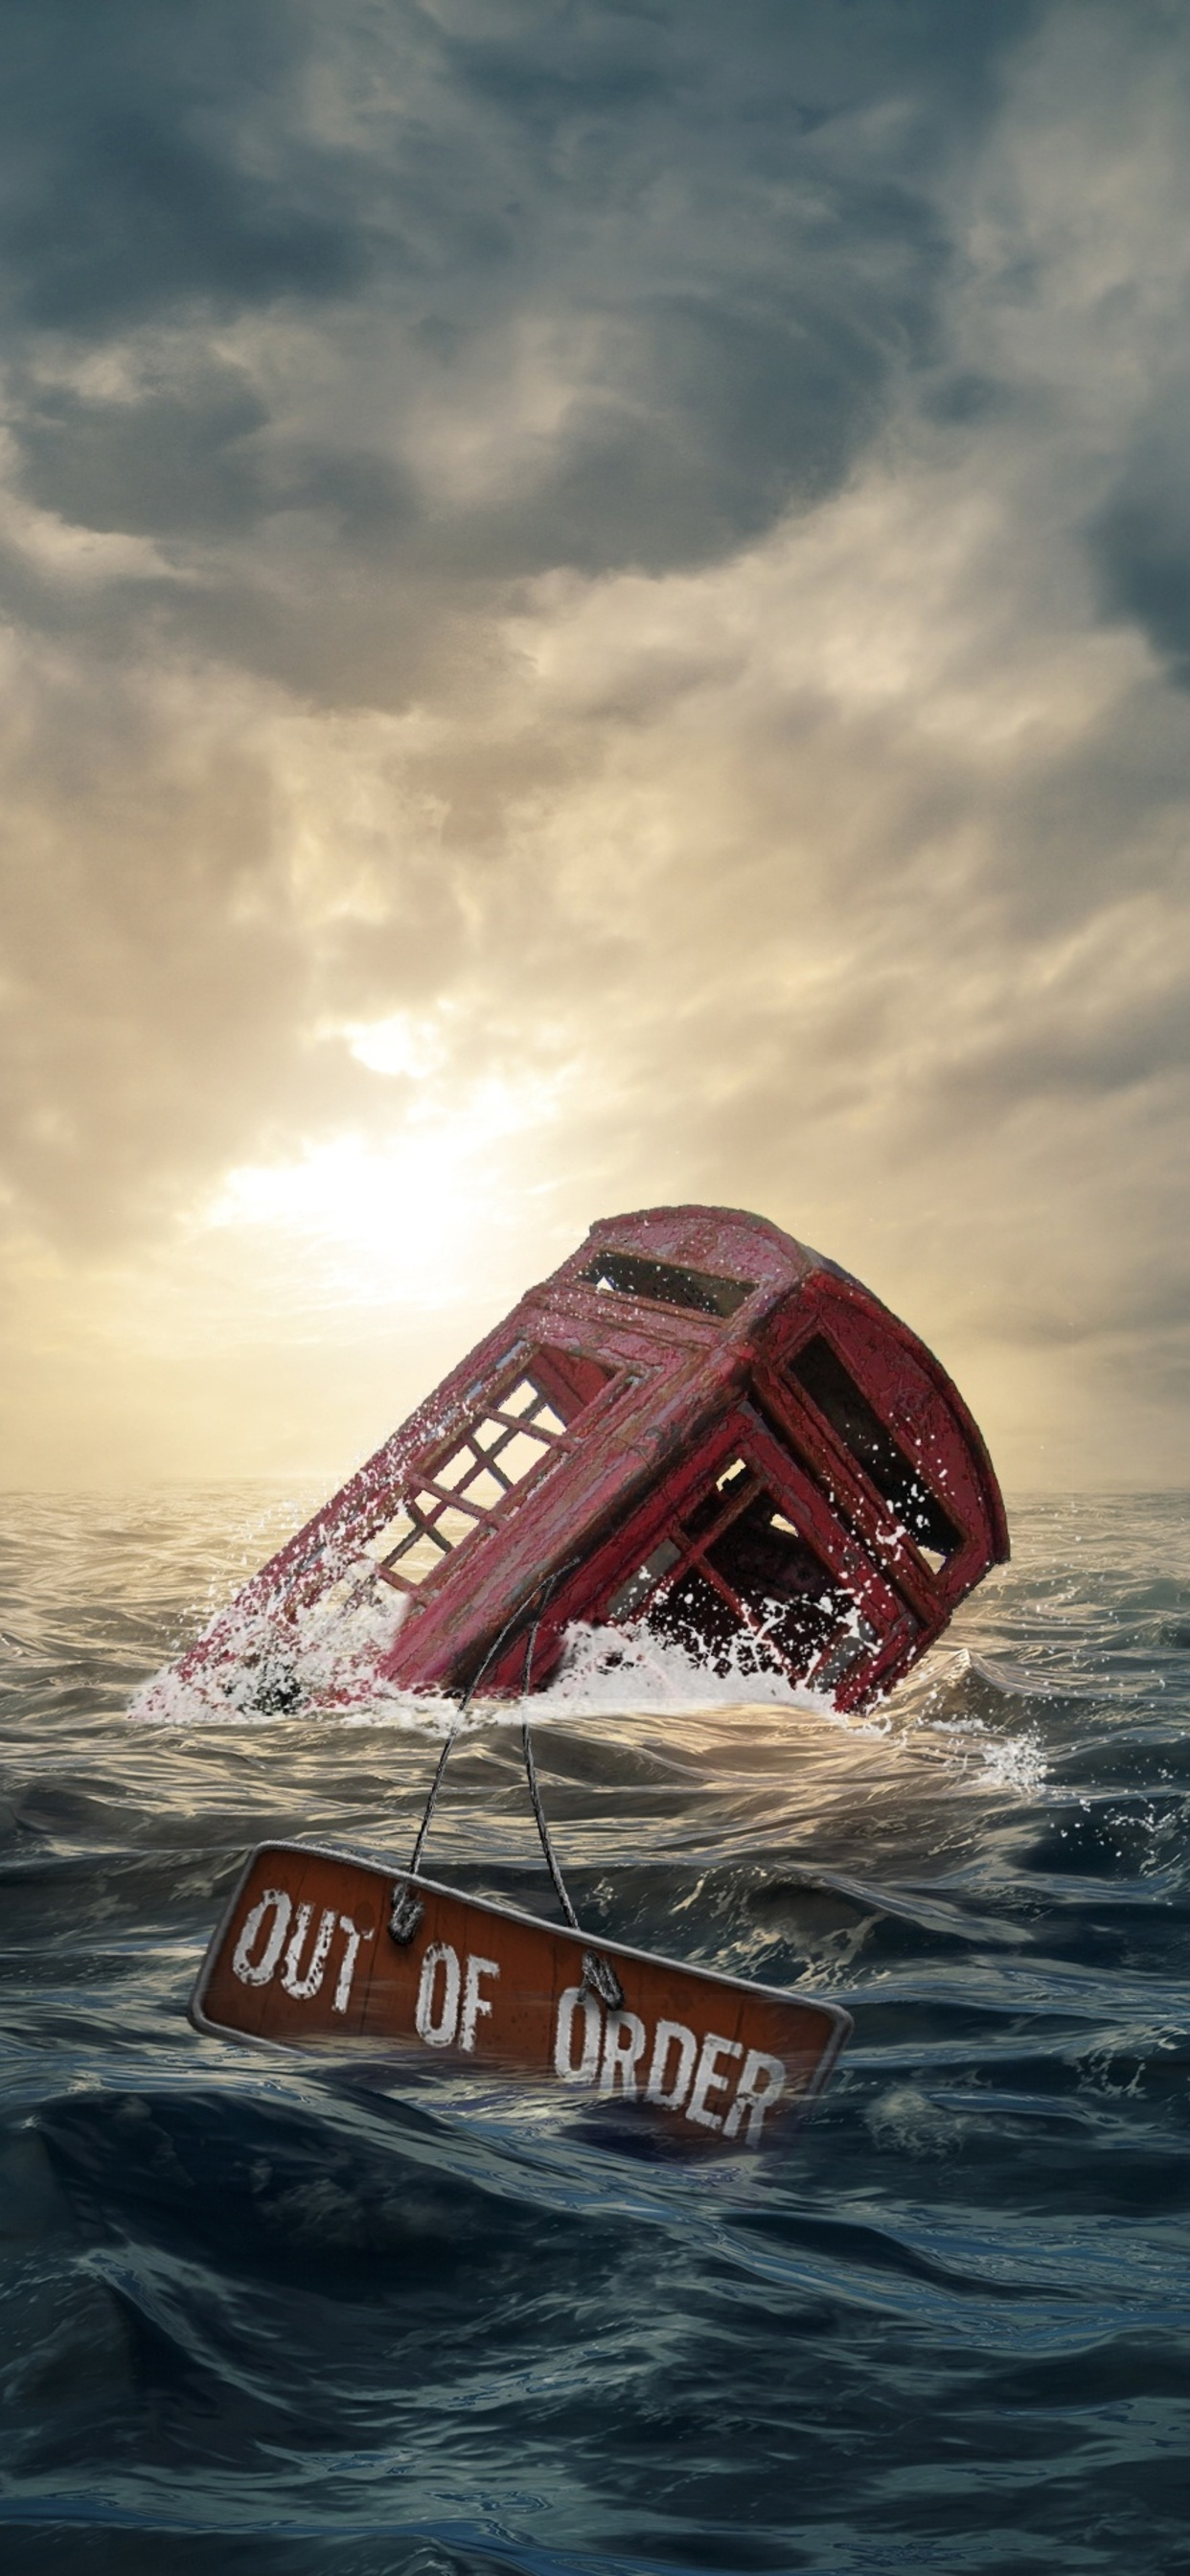 telephone-booth-drowning-in-sea-out-of-order-pi.jpg